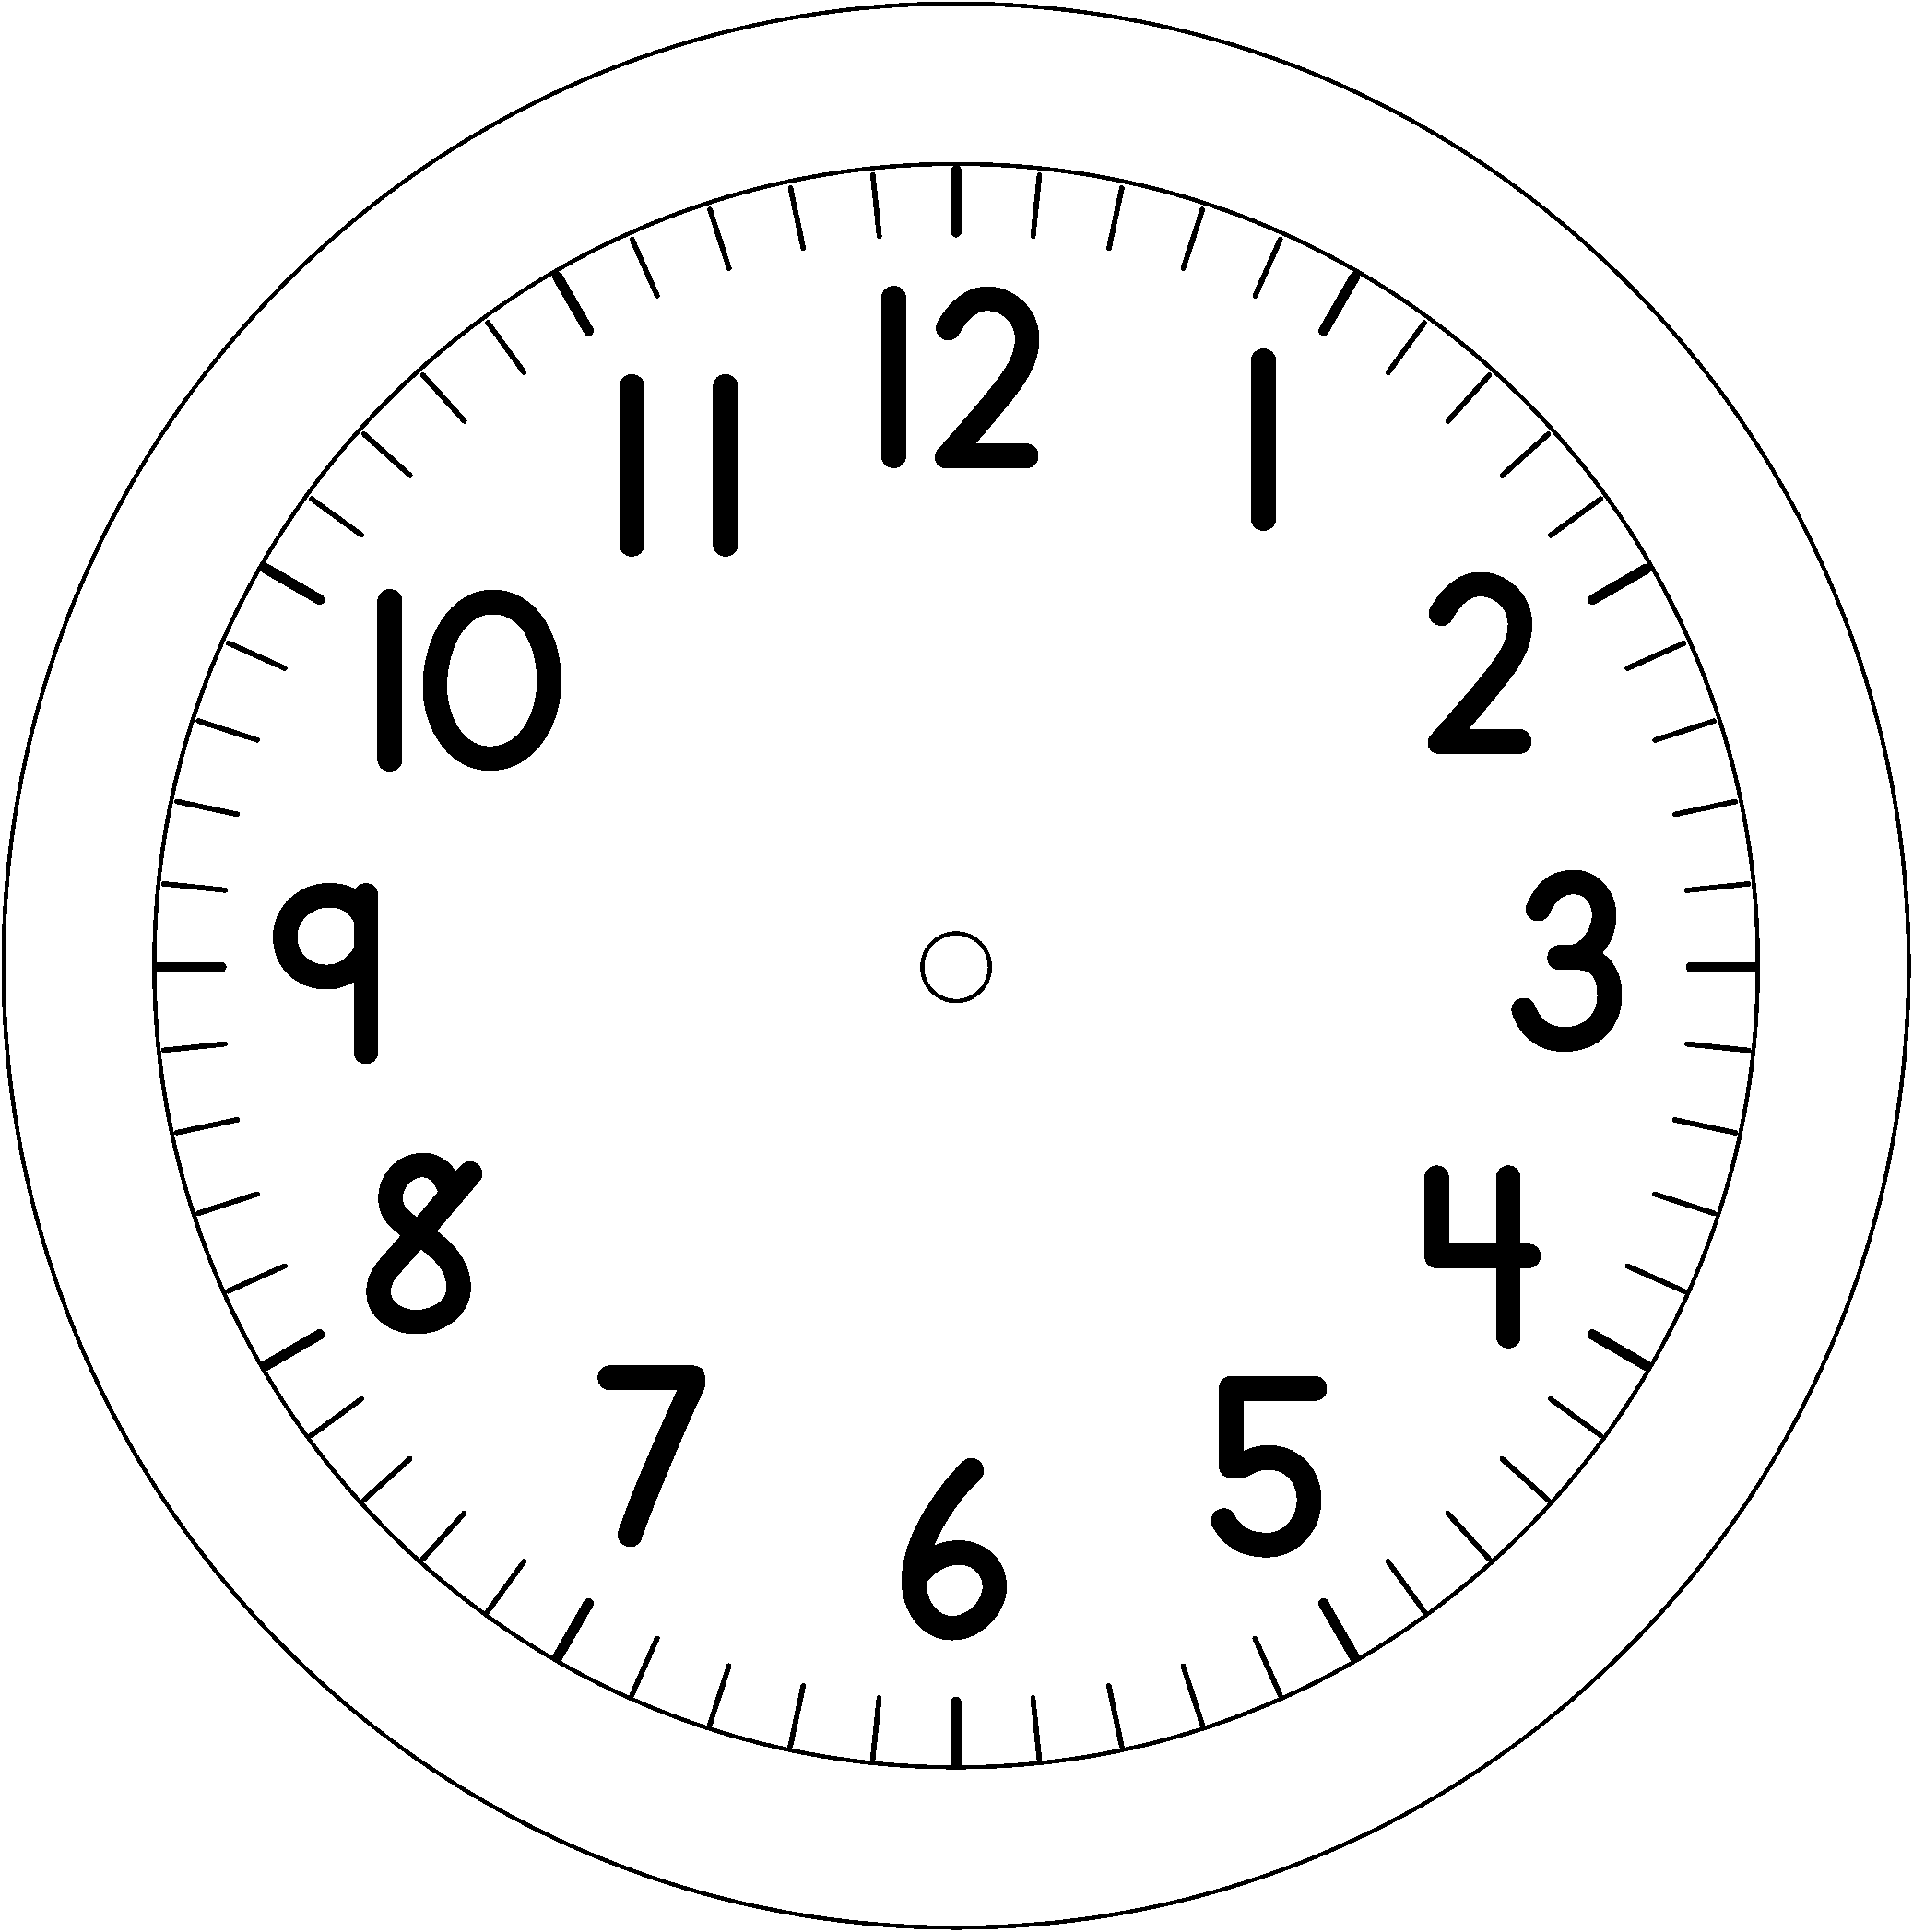 Clocks clipart half hour, Clocks half hour Transparent FREE.